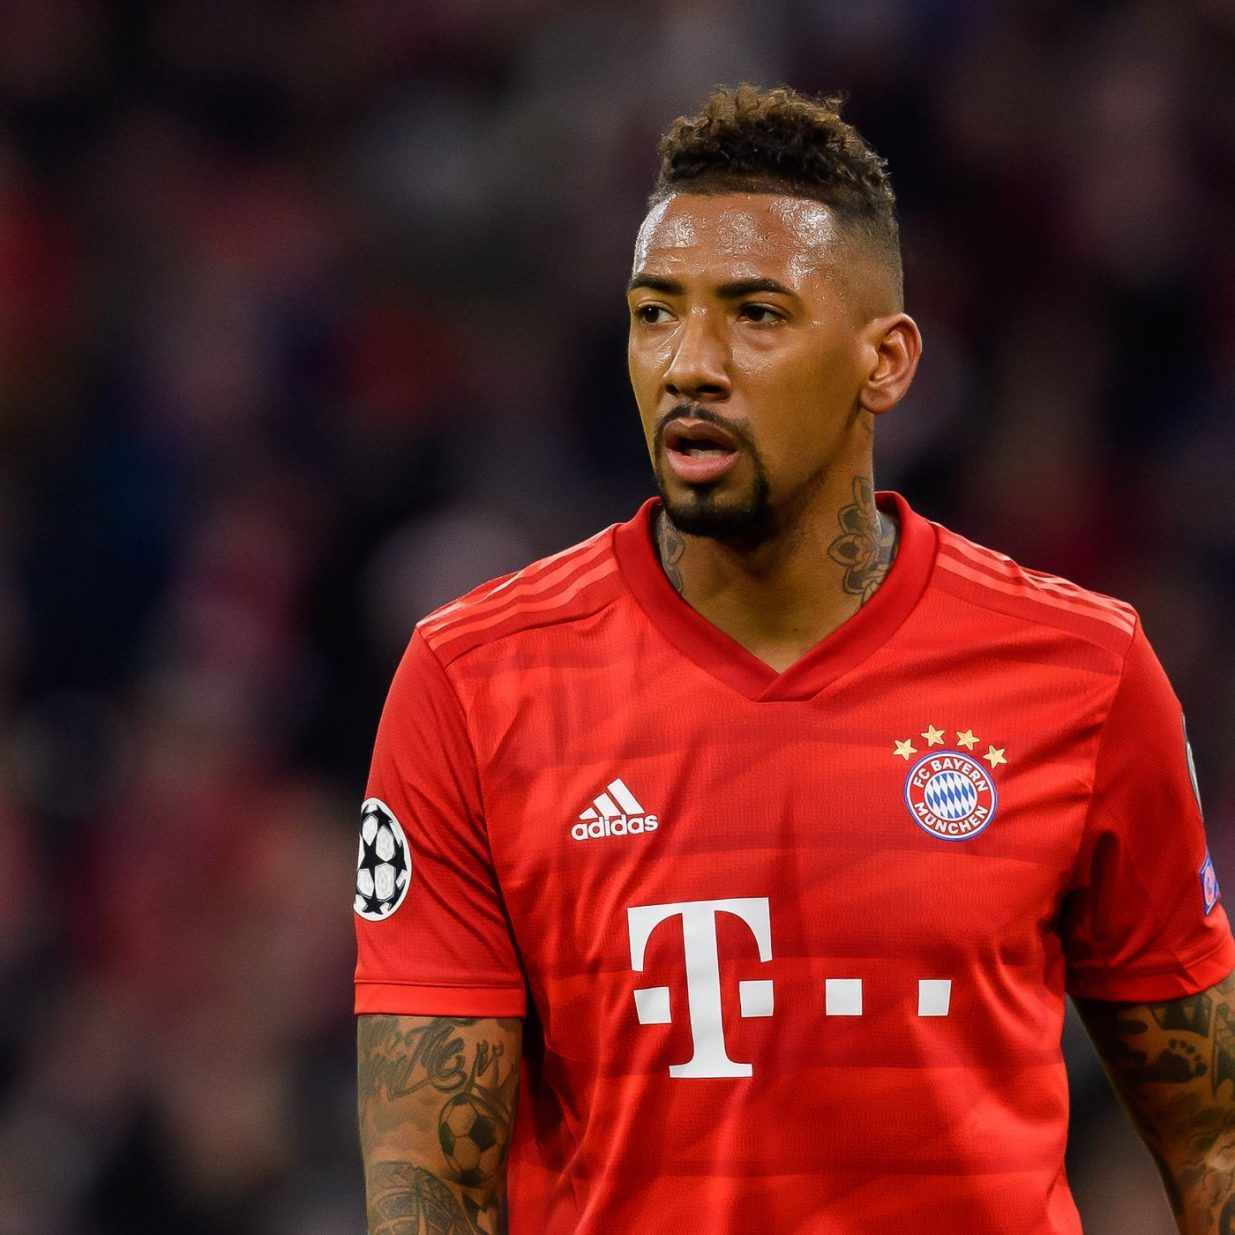 BOATENG WON'T SAY NO TO PREMIER LEAGUE MOVE